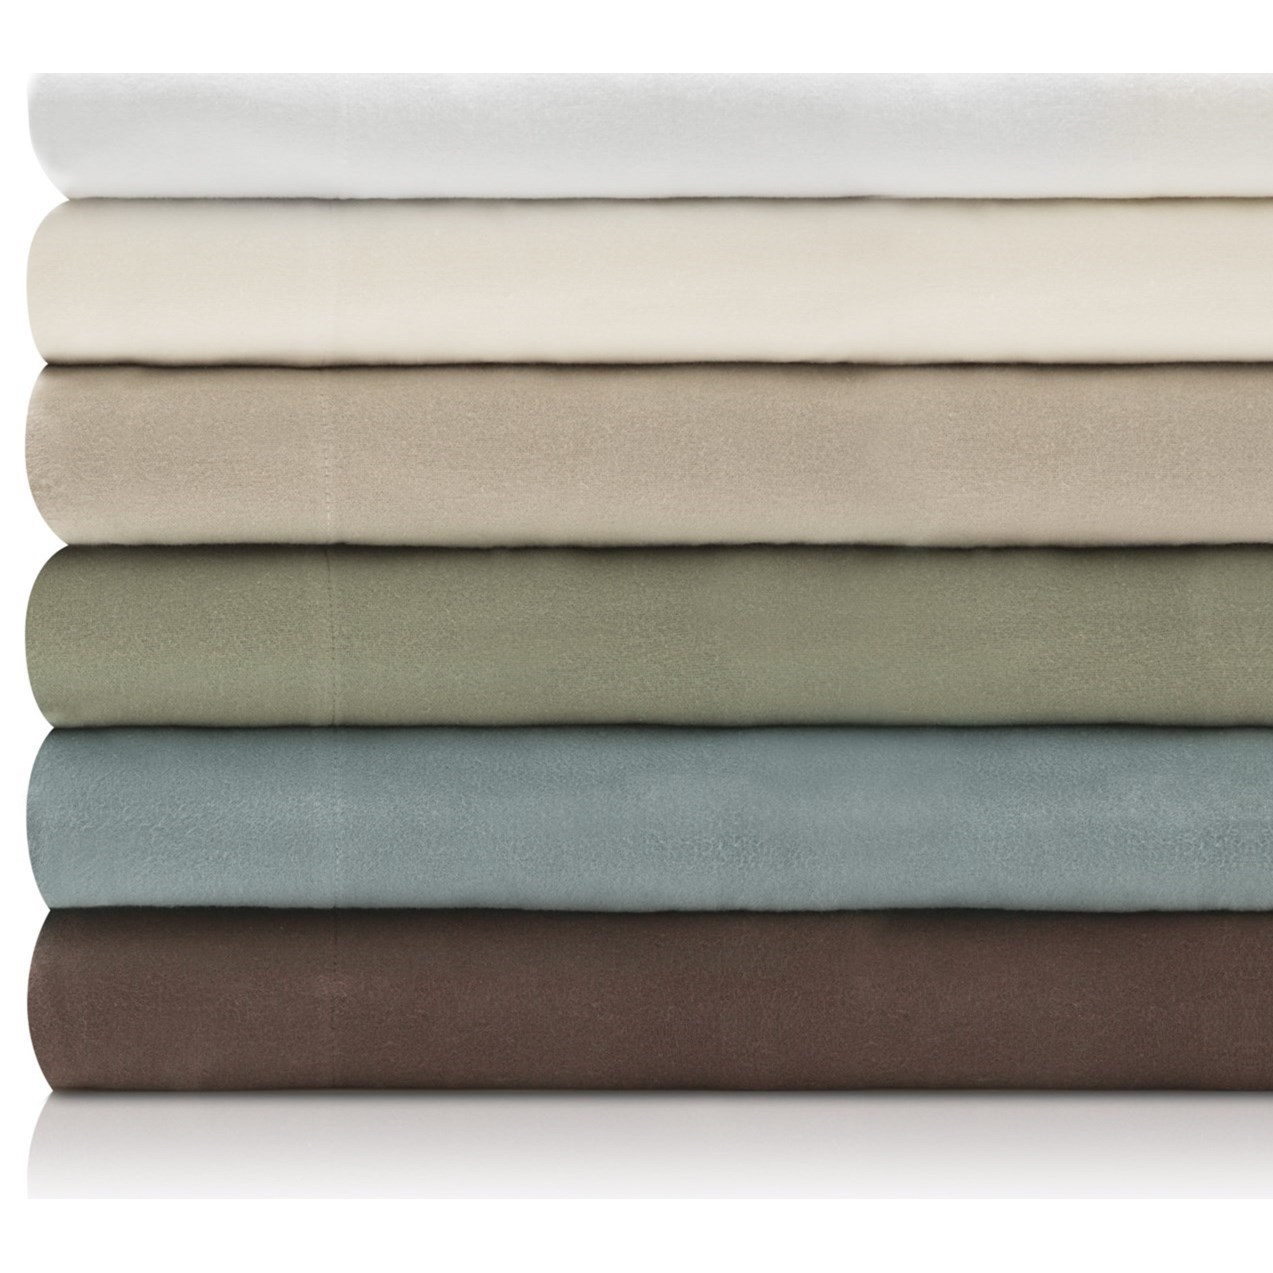 Malouf Portuguese Flannel Twin Woven™ Portuguese Flannel Sheet Set - Item Number: WO19TTOAFS